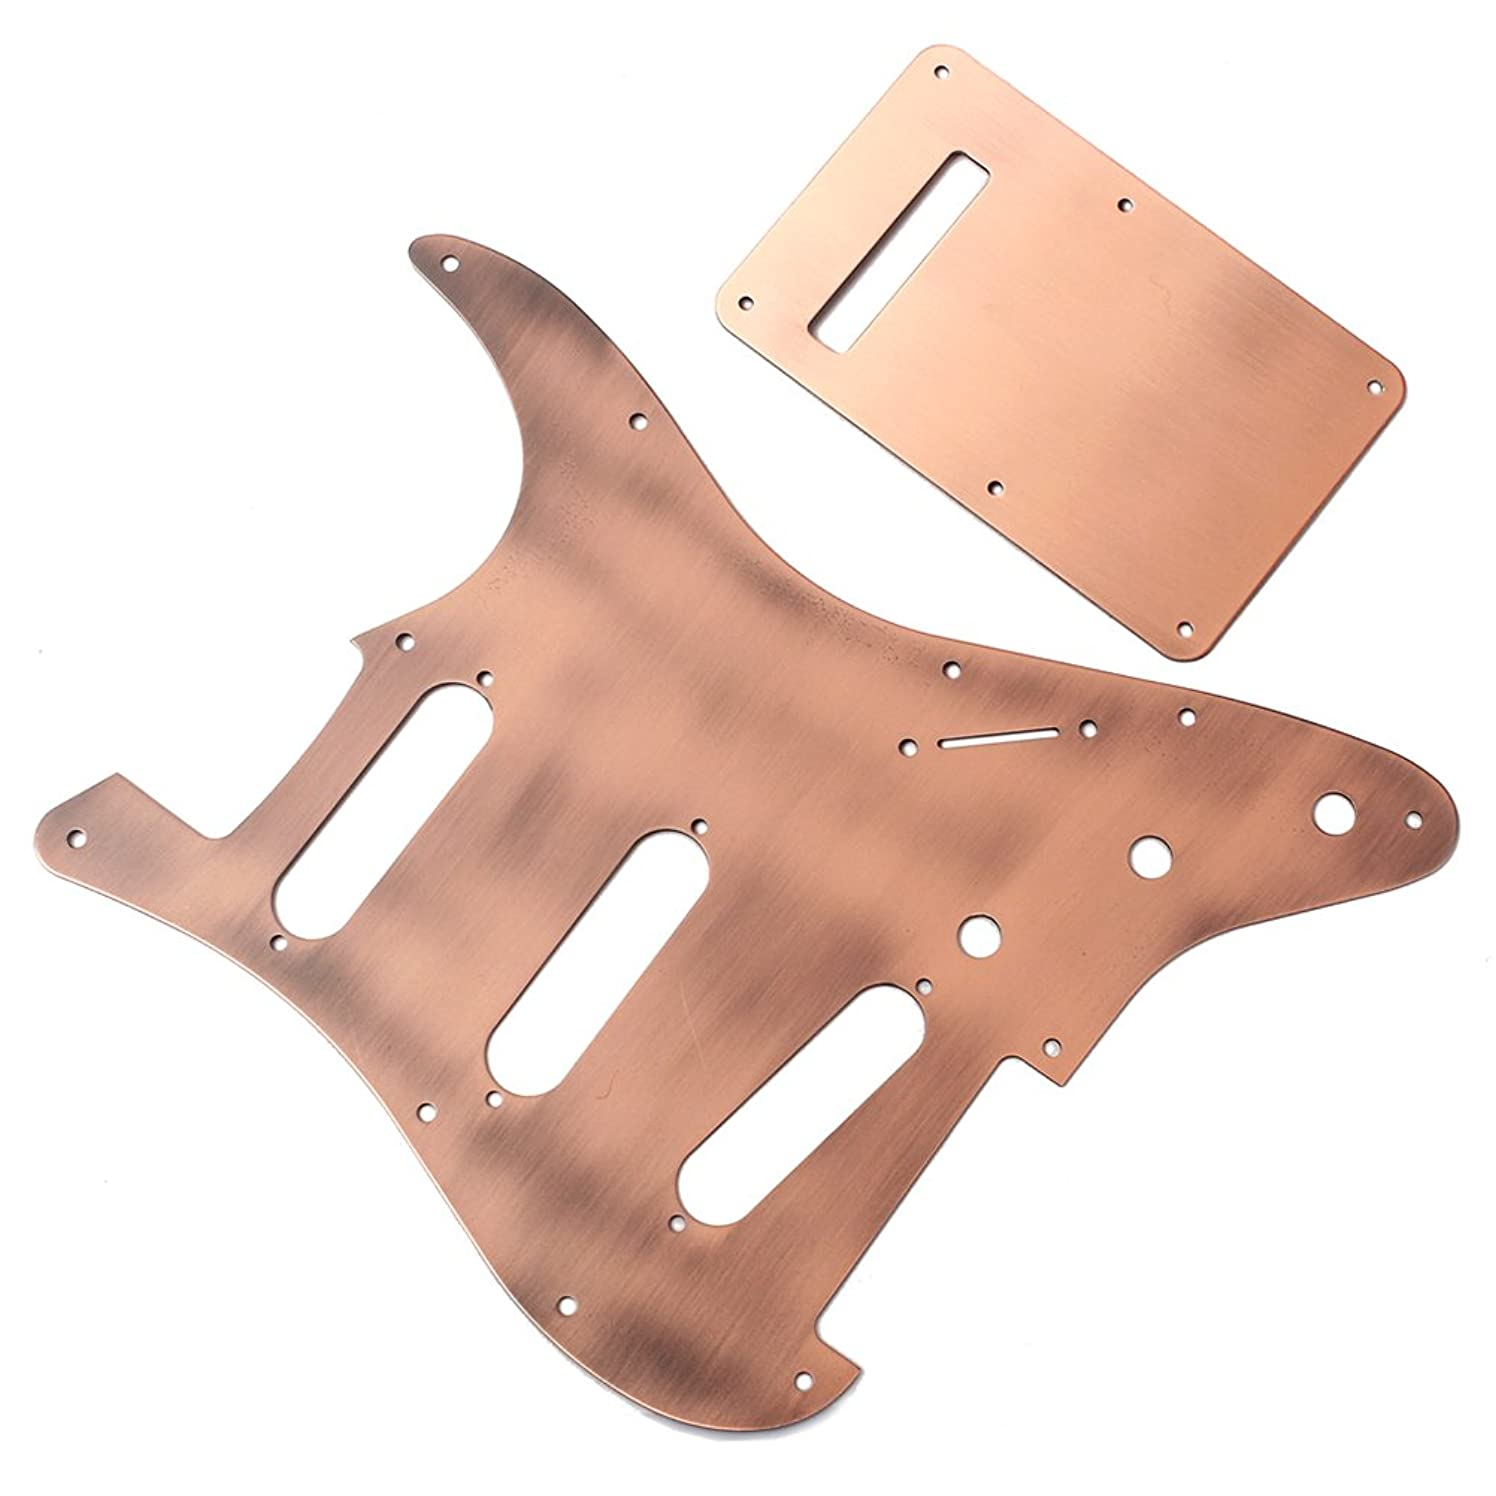 WINOMO Guitar Pickguard 3 Single Coil with Back Plate Loaded Prewired Electric for Fender Strat Stratocaster Guitar Parts Brass